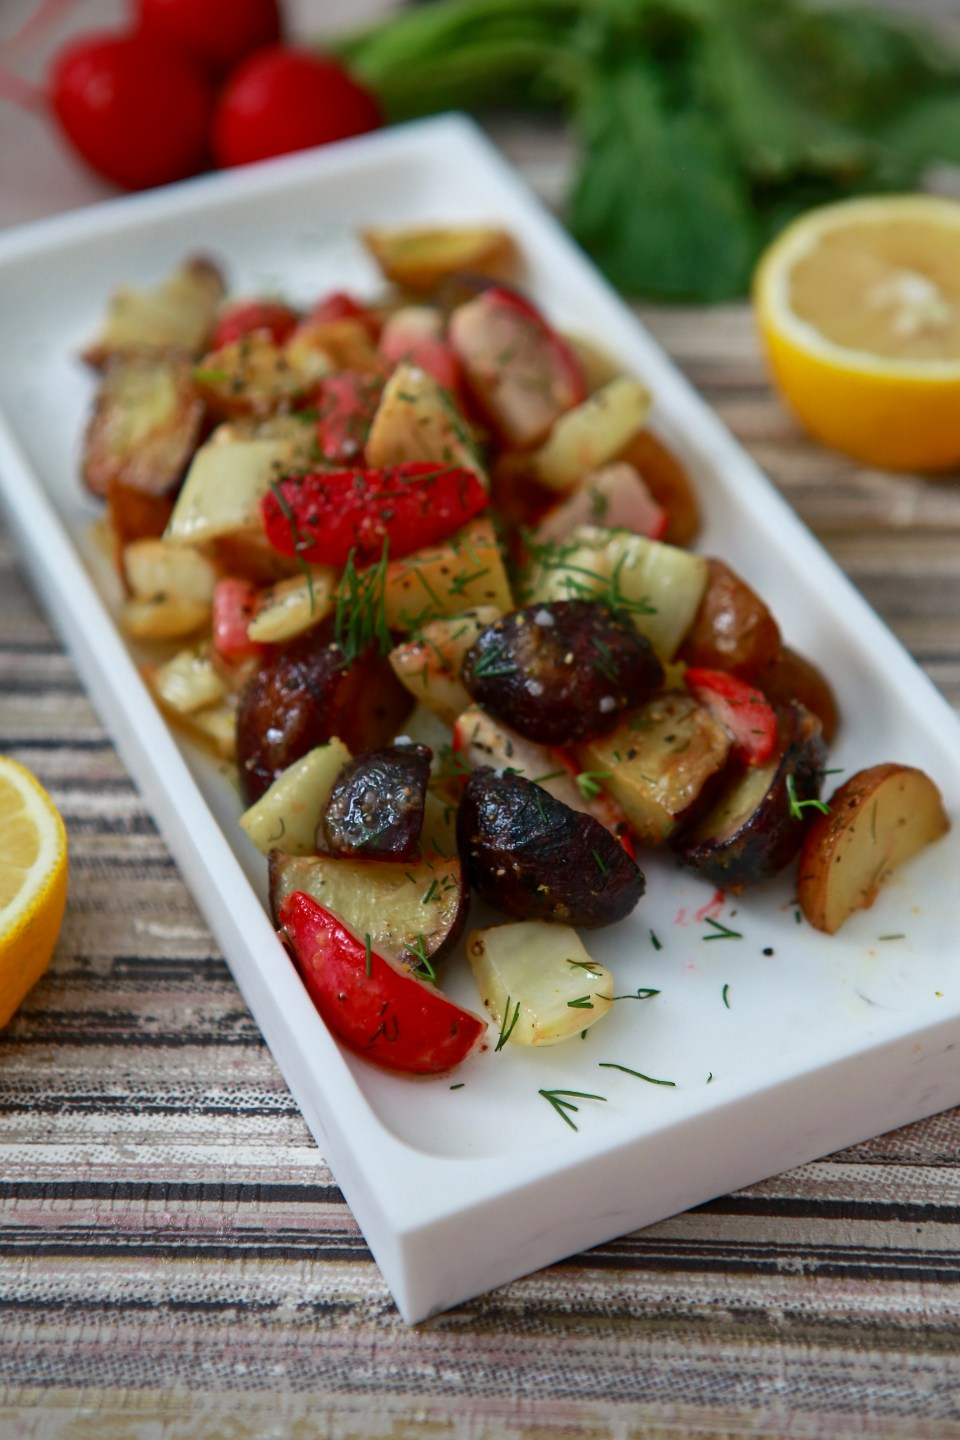 Roasted veggies with fresh dill